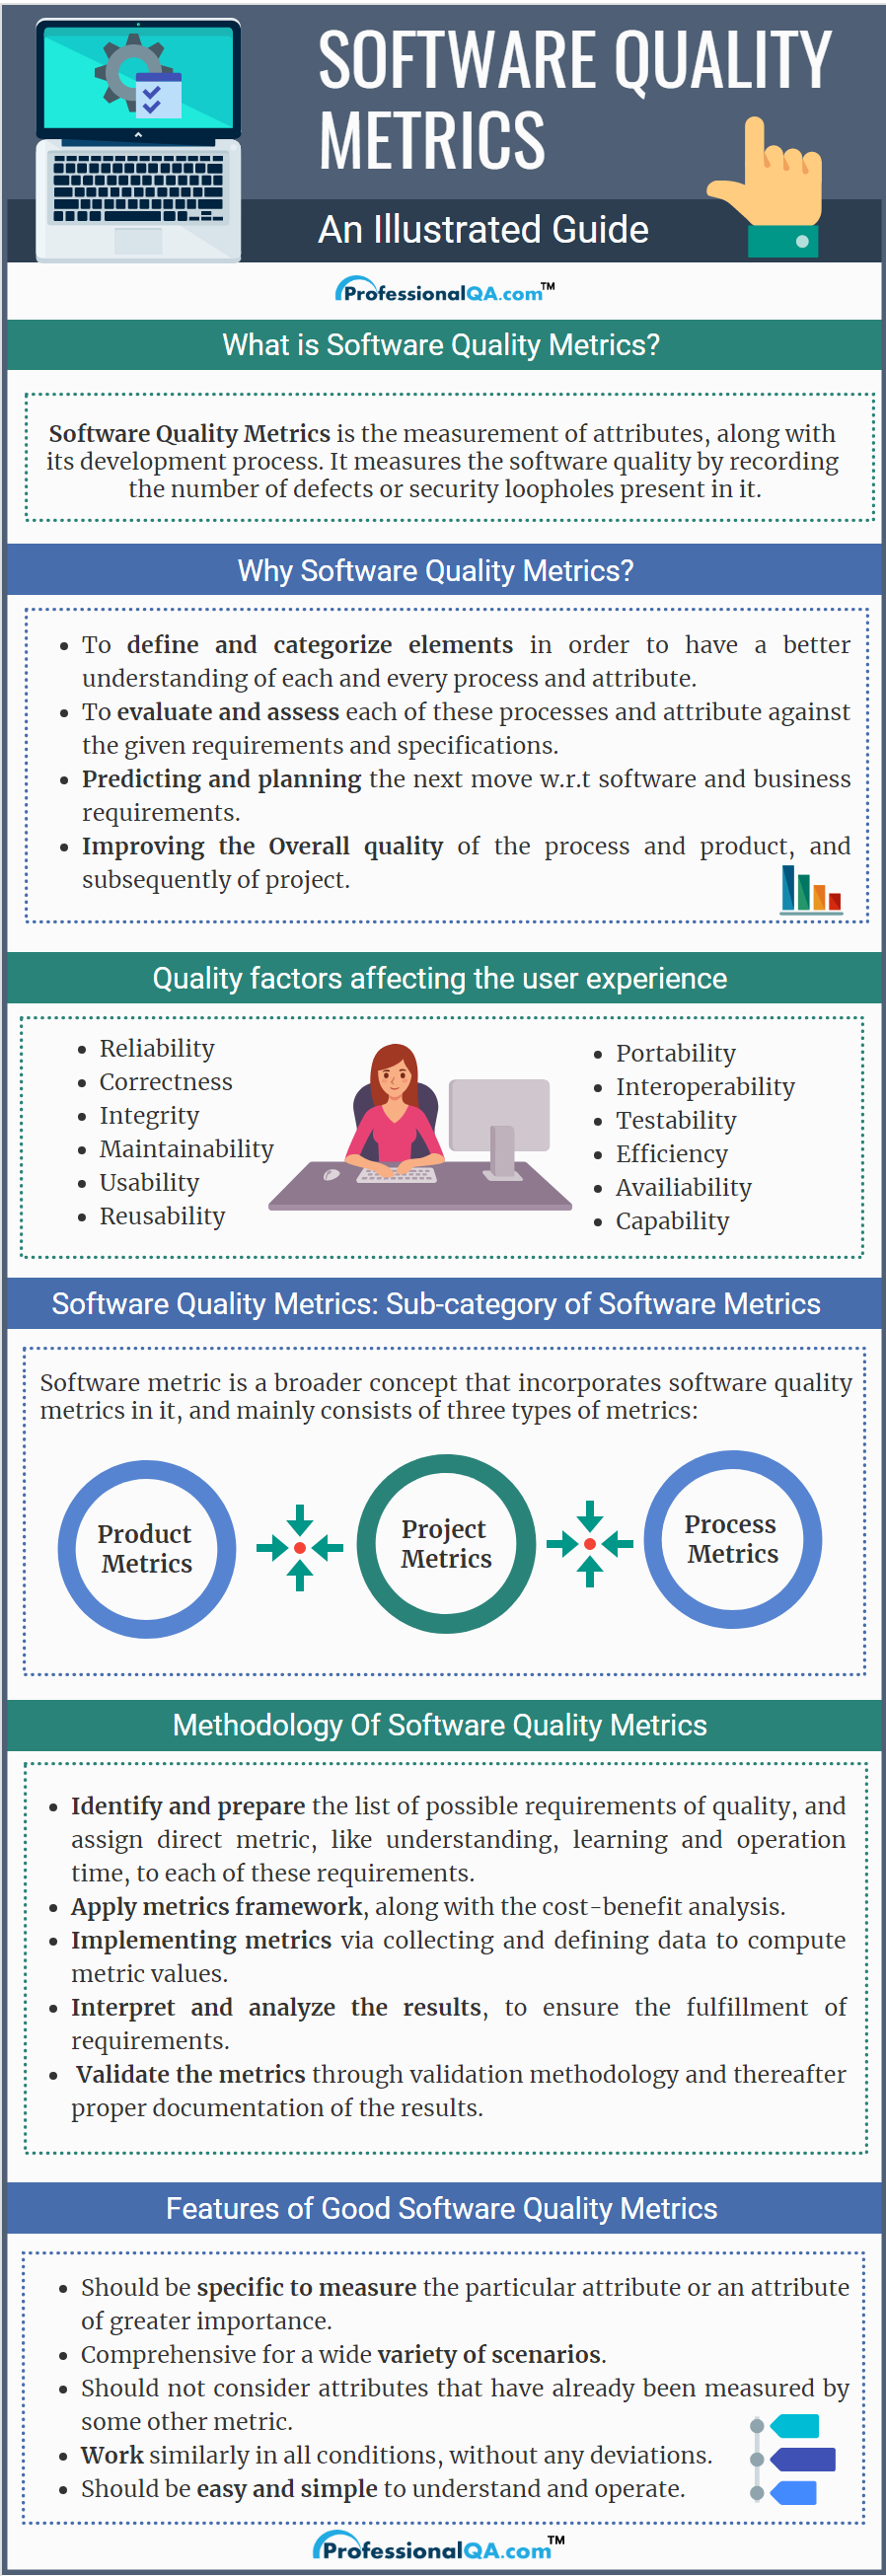 Software Quality Metrics |Professionalqa.com